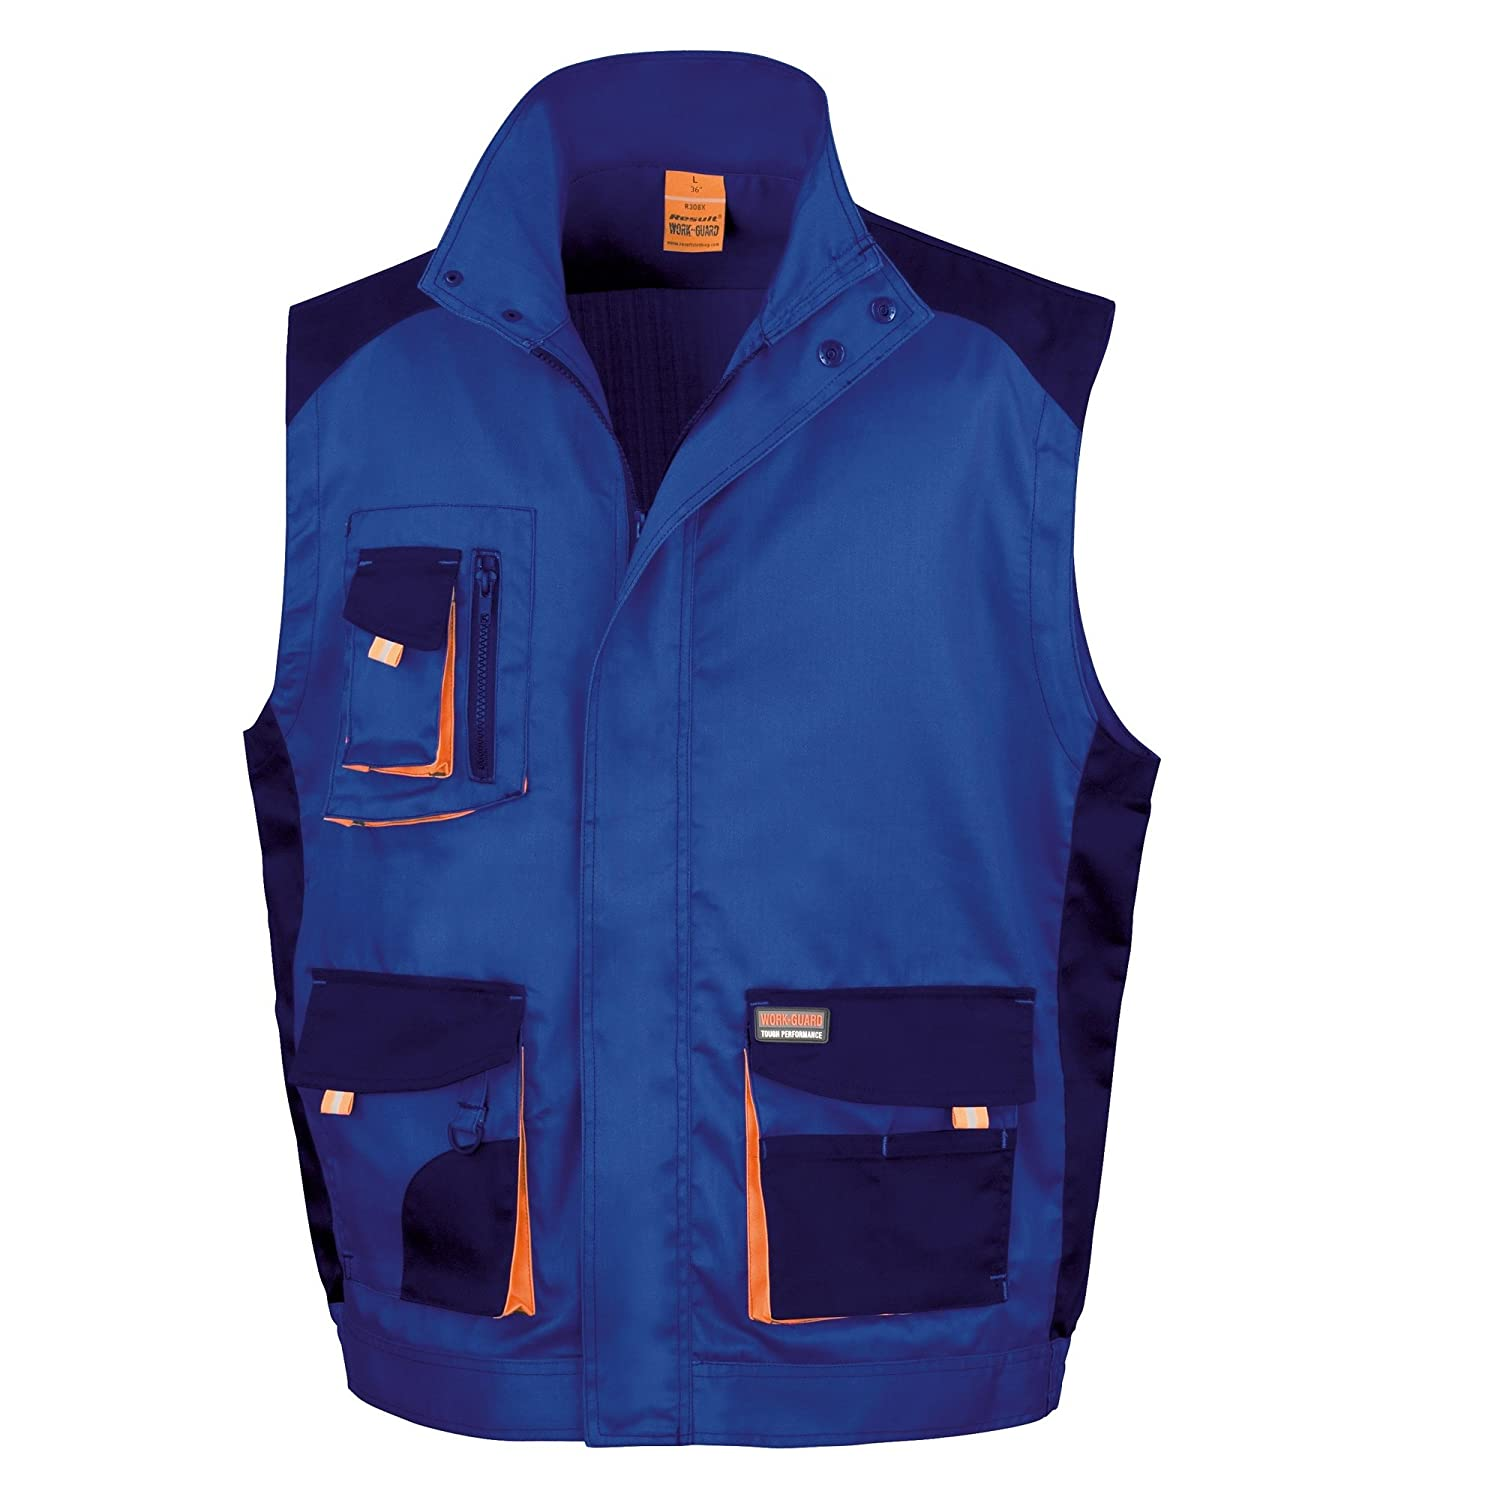 Résultat R317 X Work-Guard Lite Gilet Bleu Roi/Bleu Marine/Orange